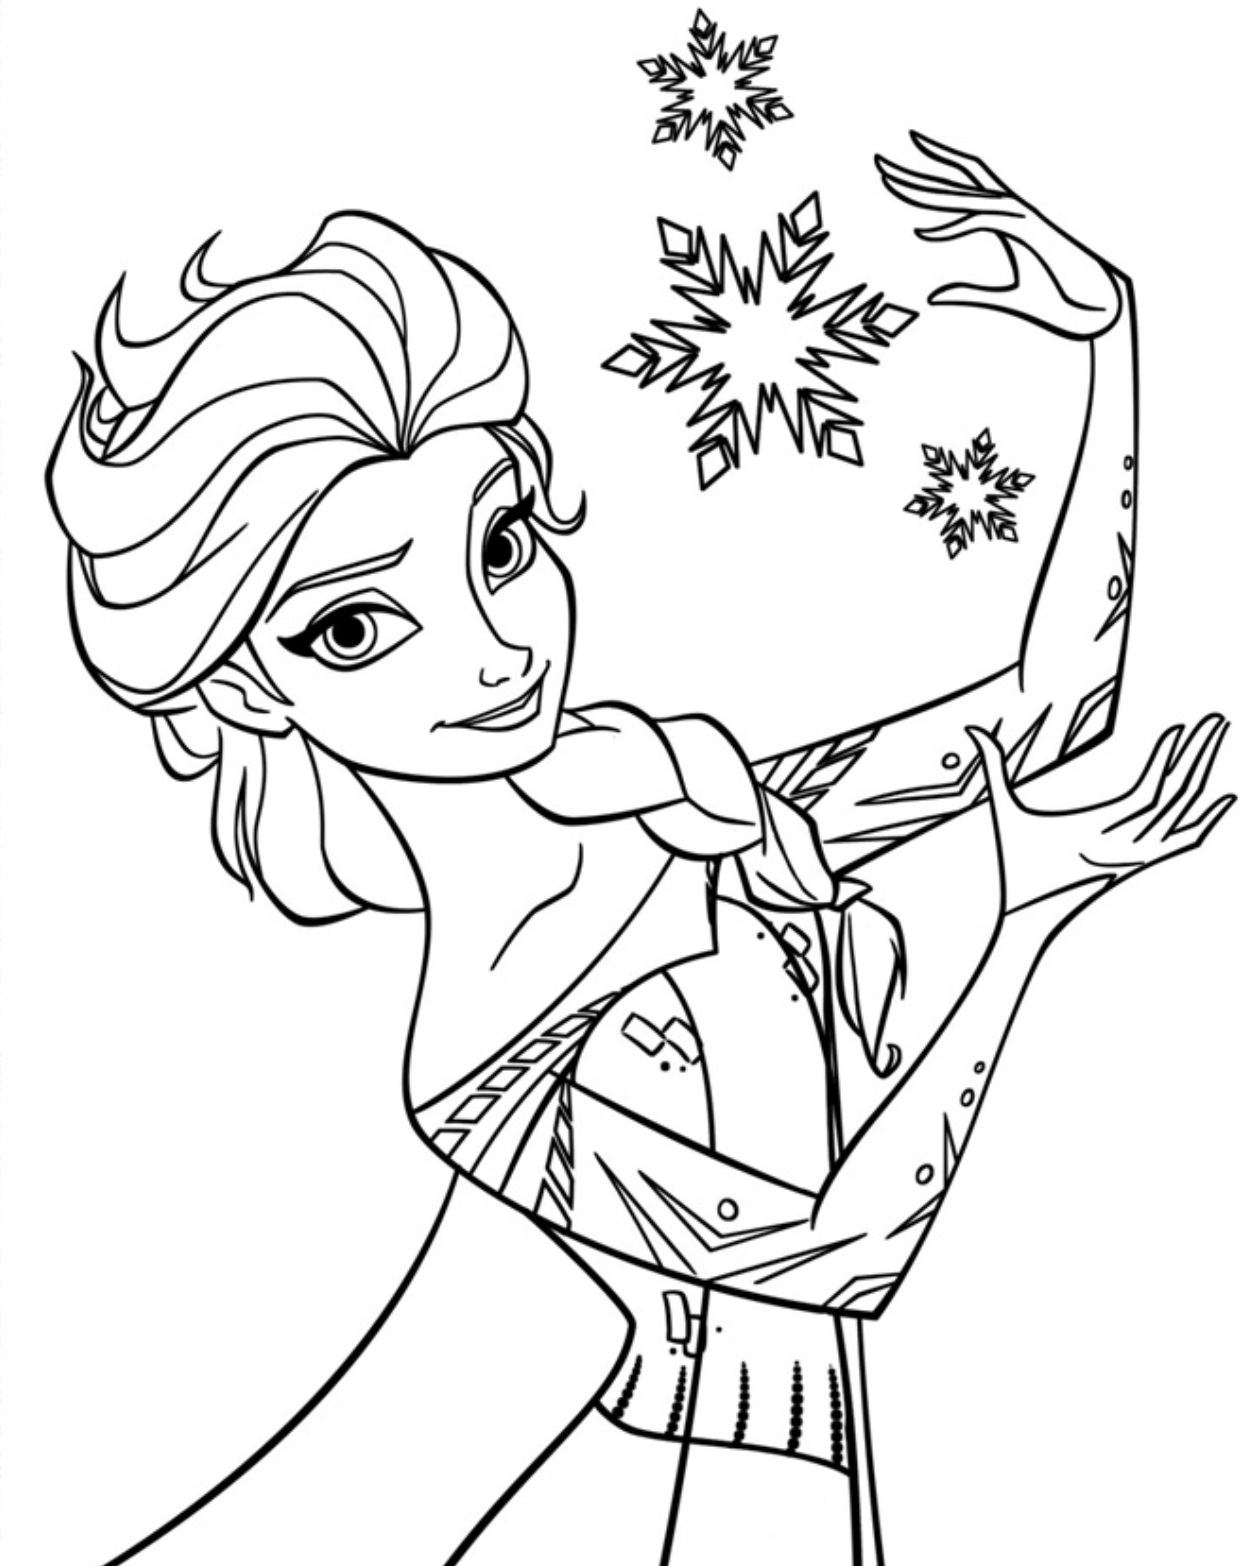 frozen coloring pages, printable frozen coloring pages, free frozen ...